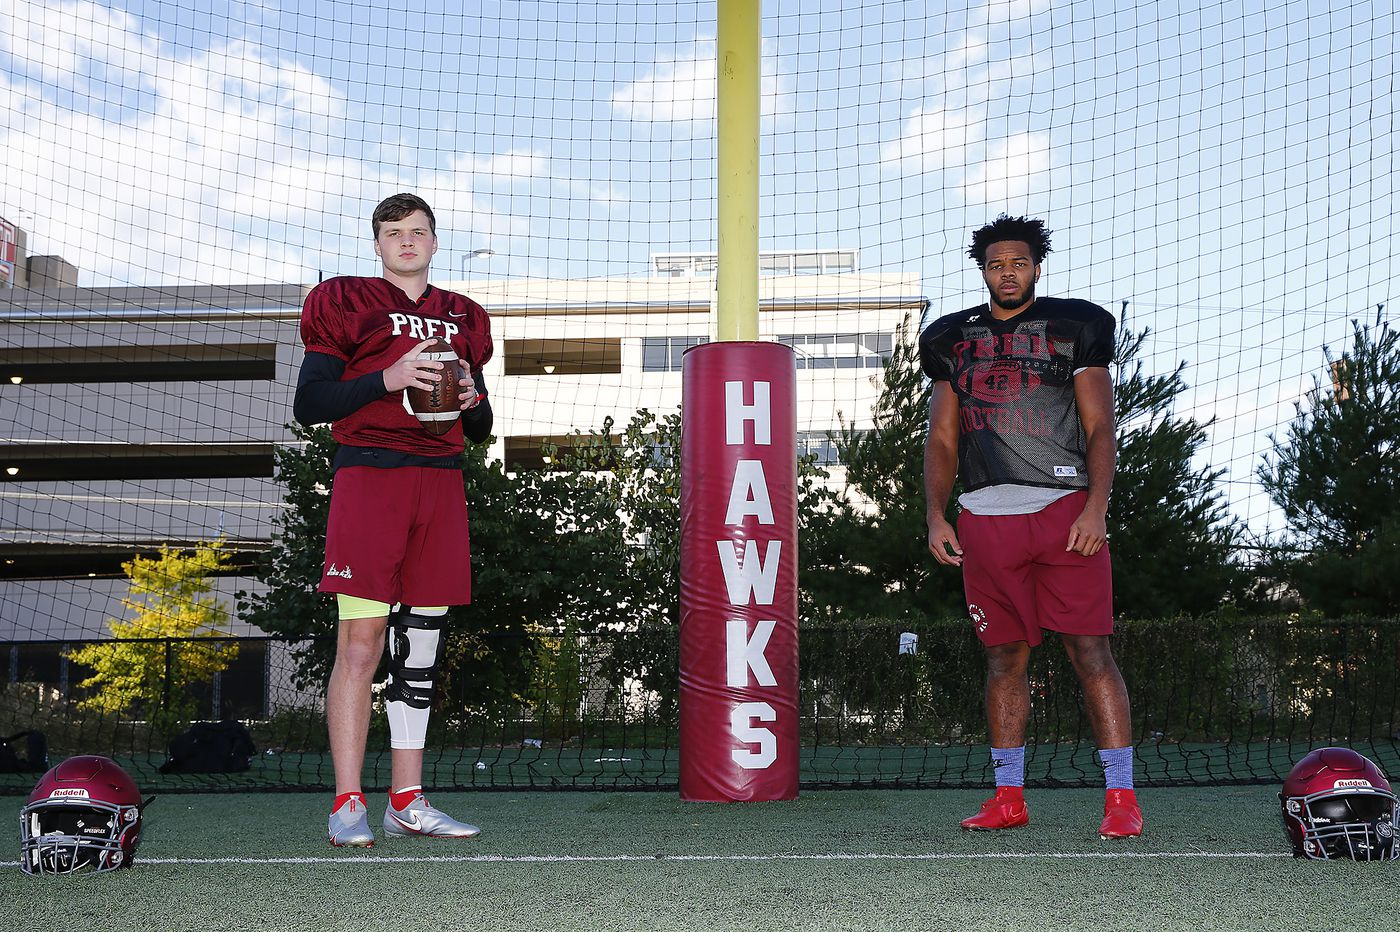 It's been a long road back for St. Joseph's Prep football stars Jeremiah Trotter Jr. and Kyle McCord